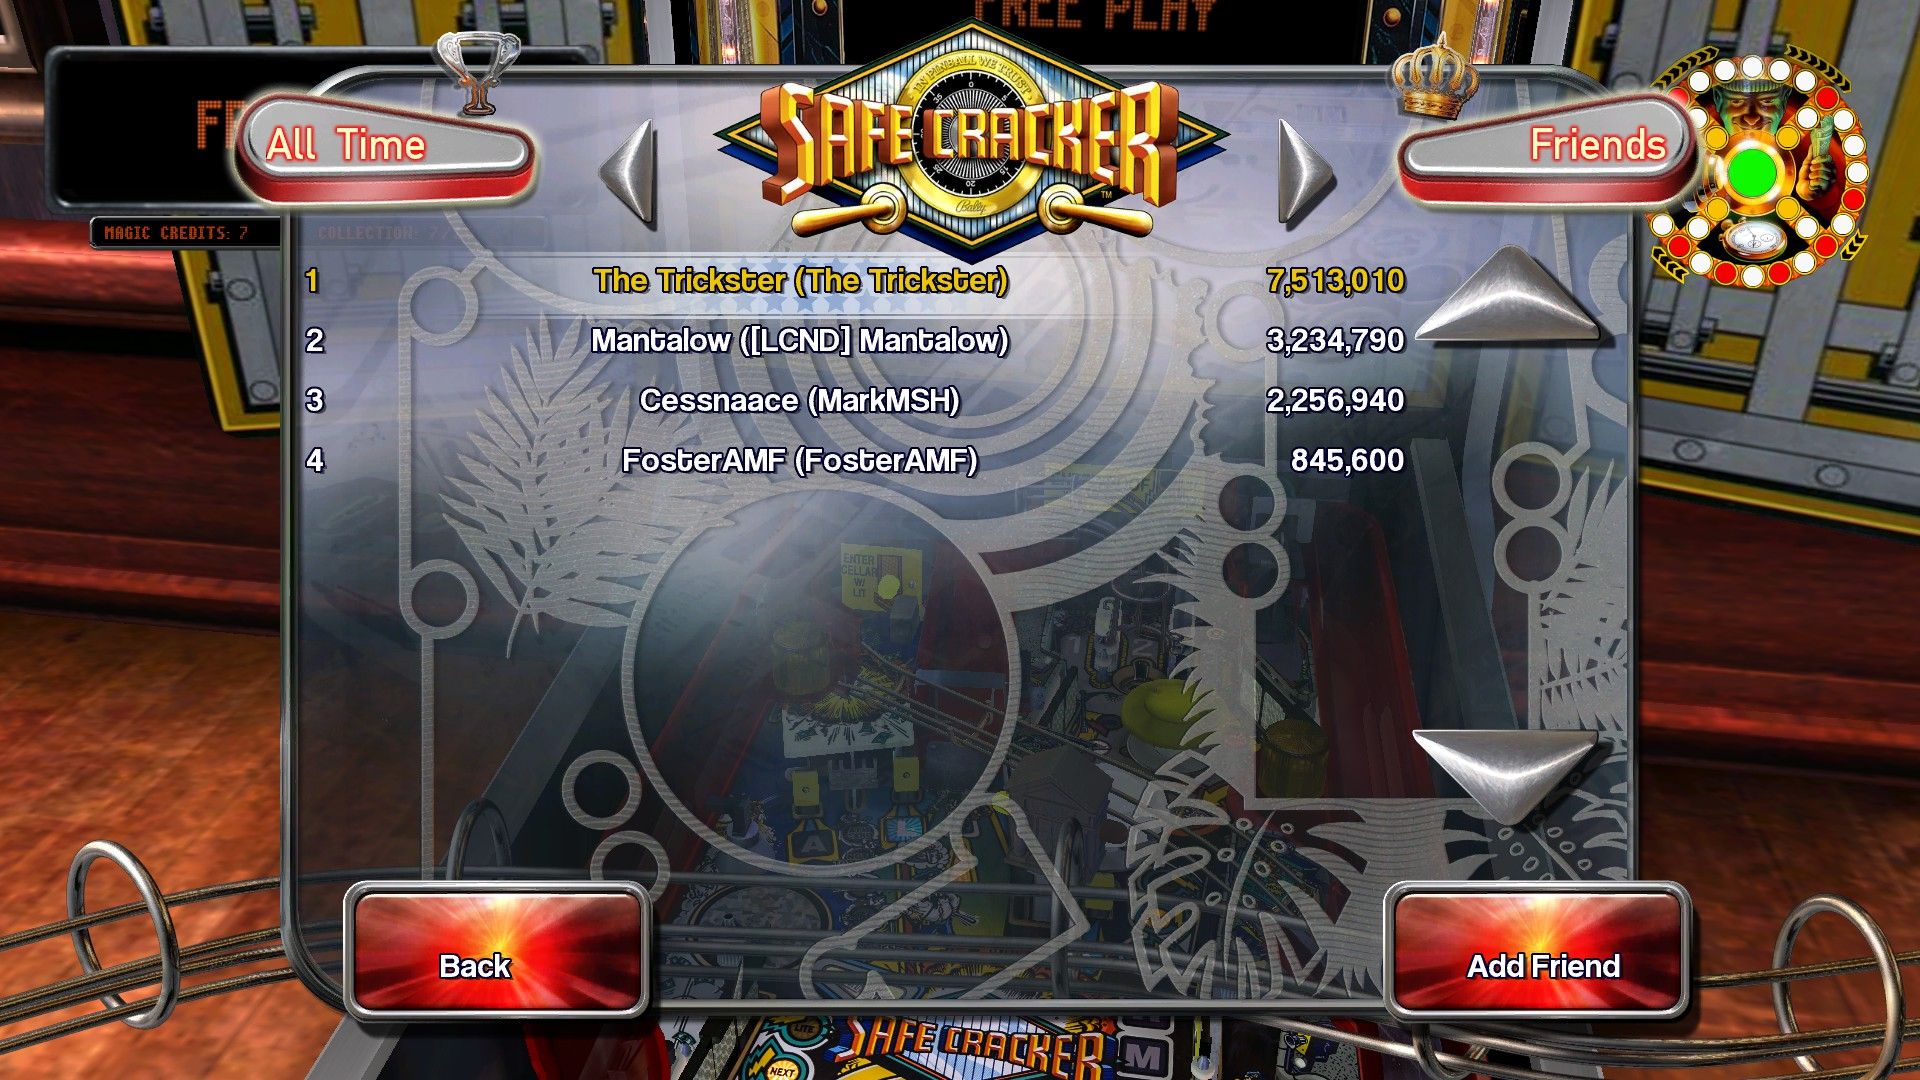 TheTrickster: Pinball Arcade: Safe Cracker (PC) 7,513,010 points on 2015-11-30 07:03:21